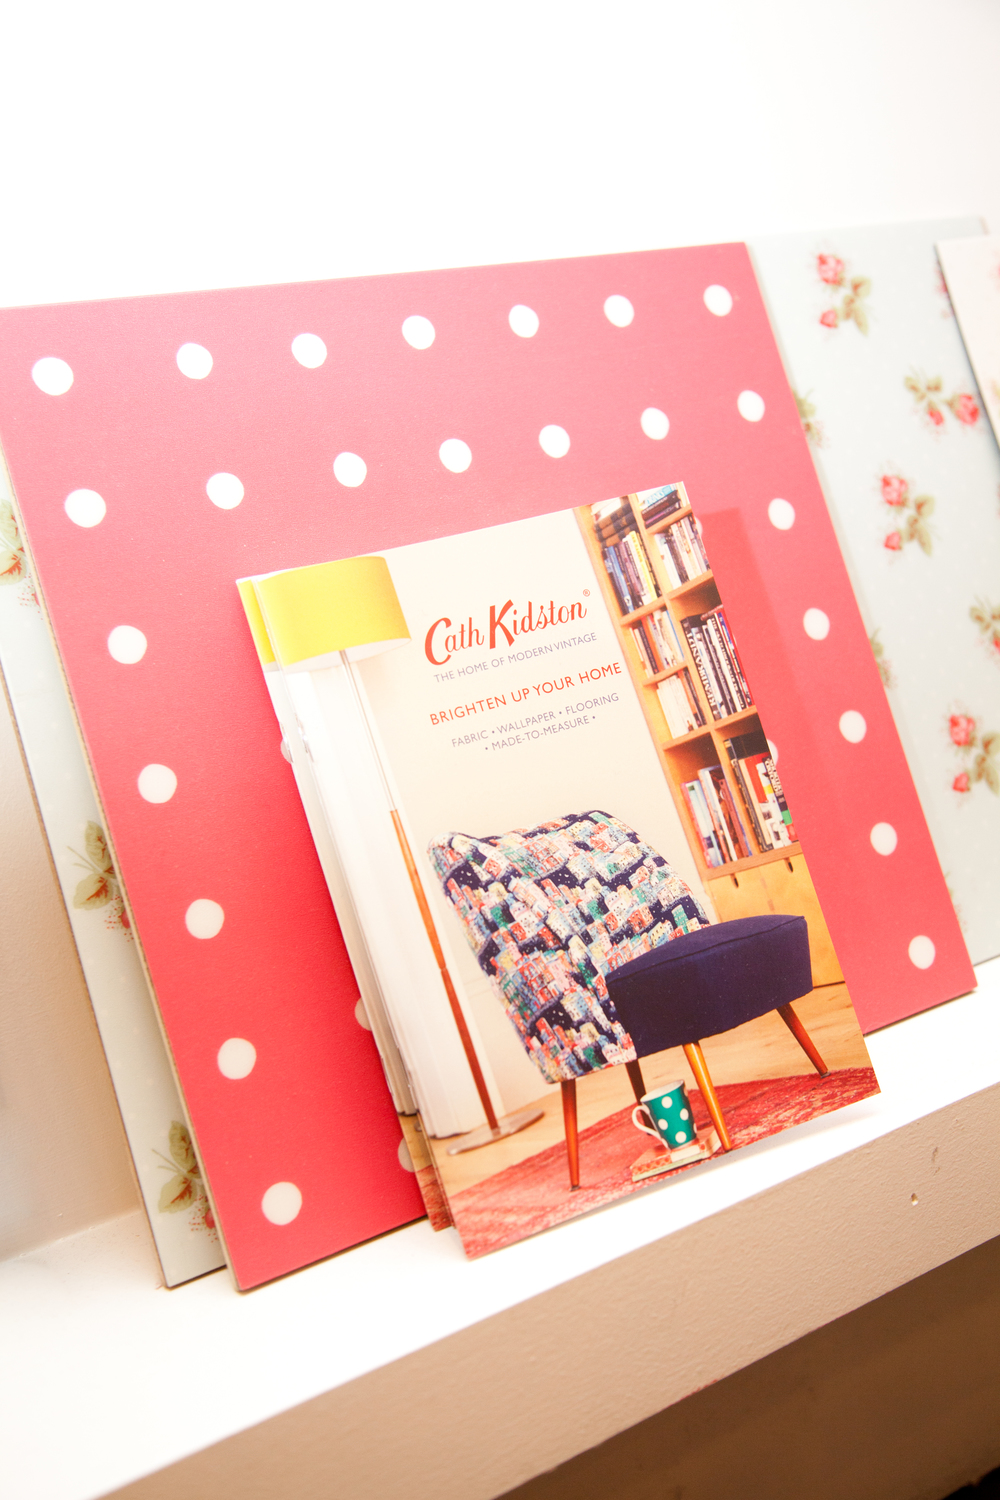 _MG_9939_cathkidston_30.jpg